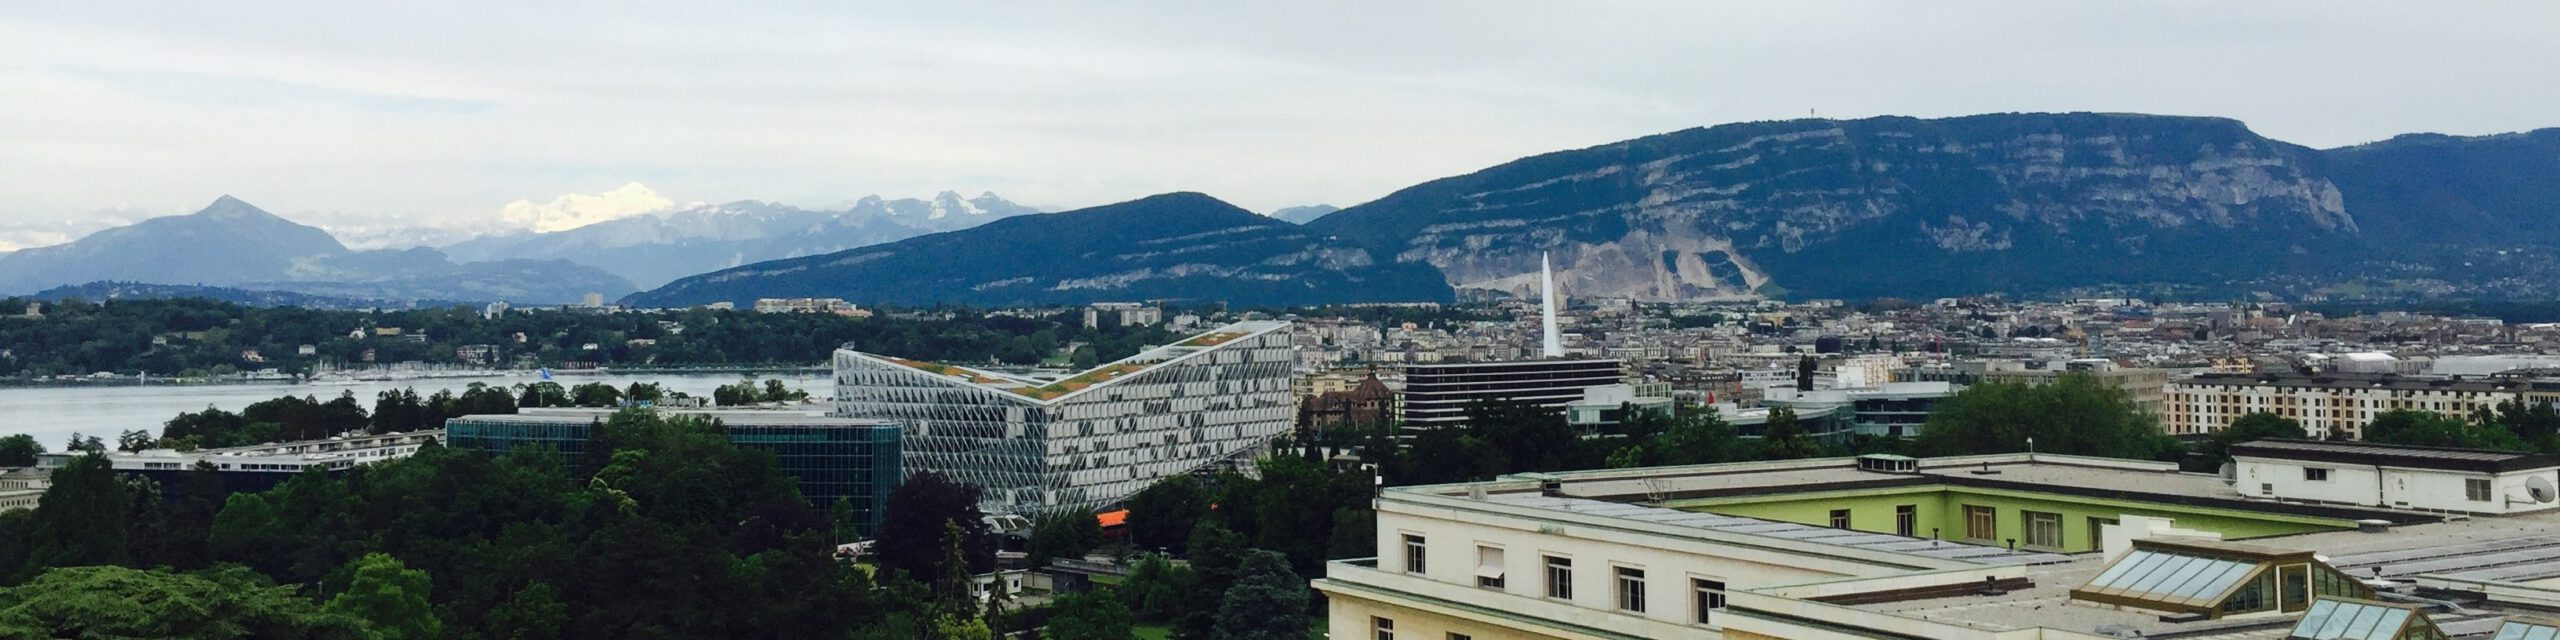 View from Palais des Nations